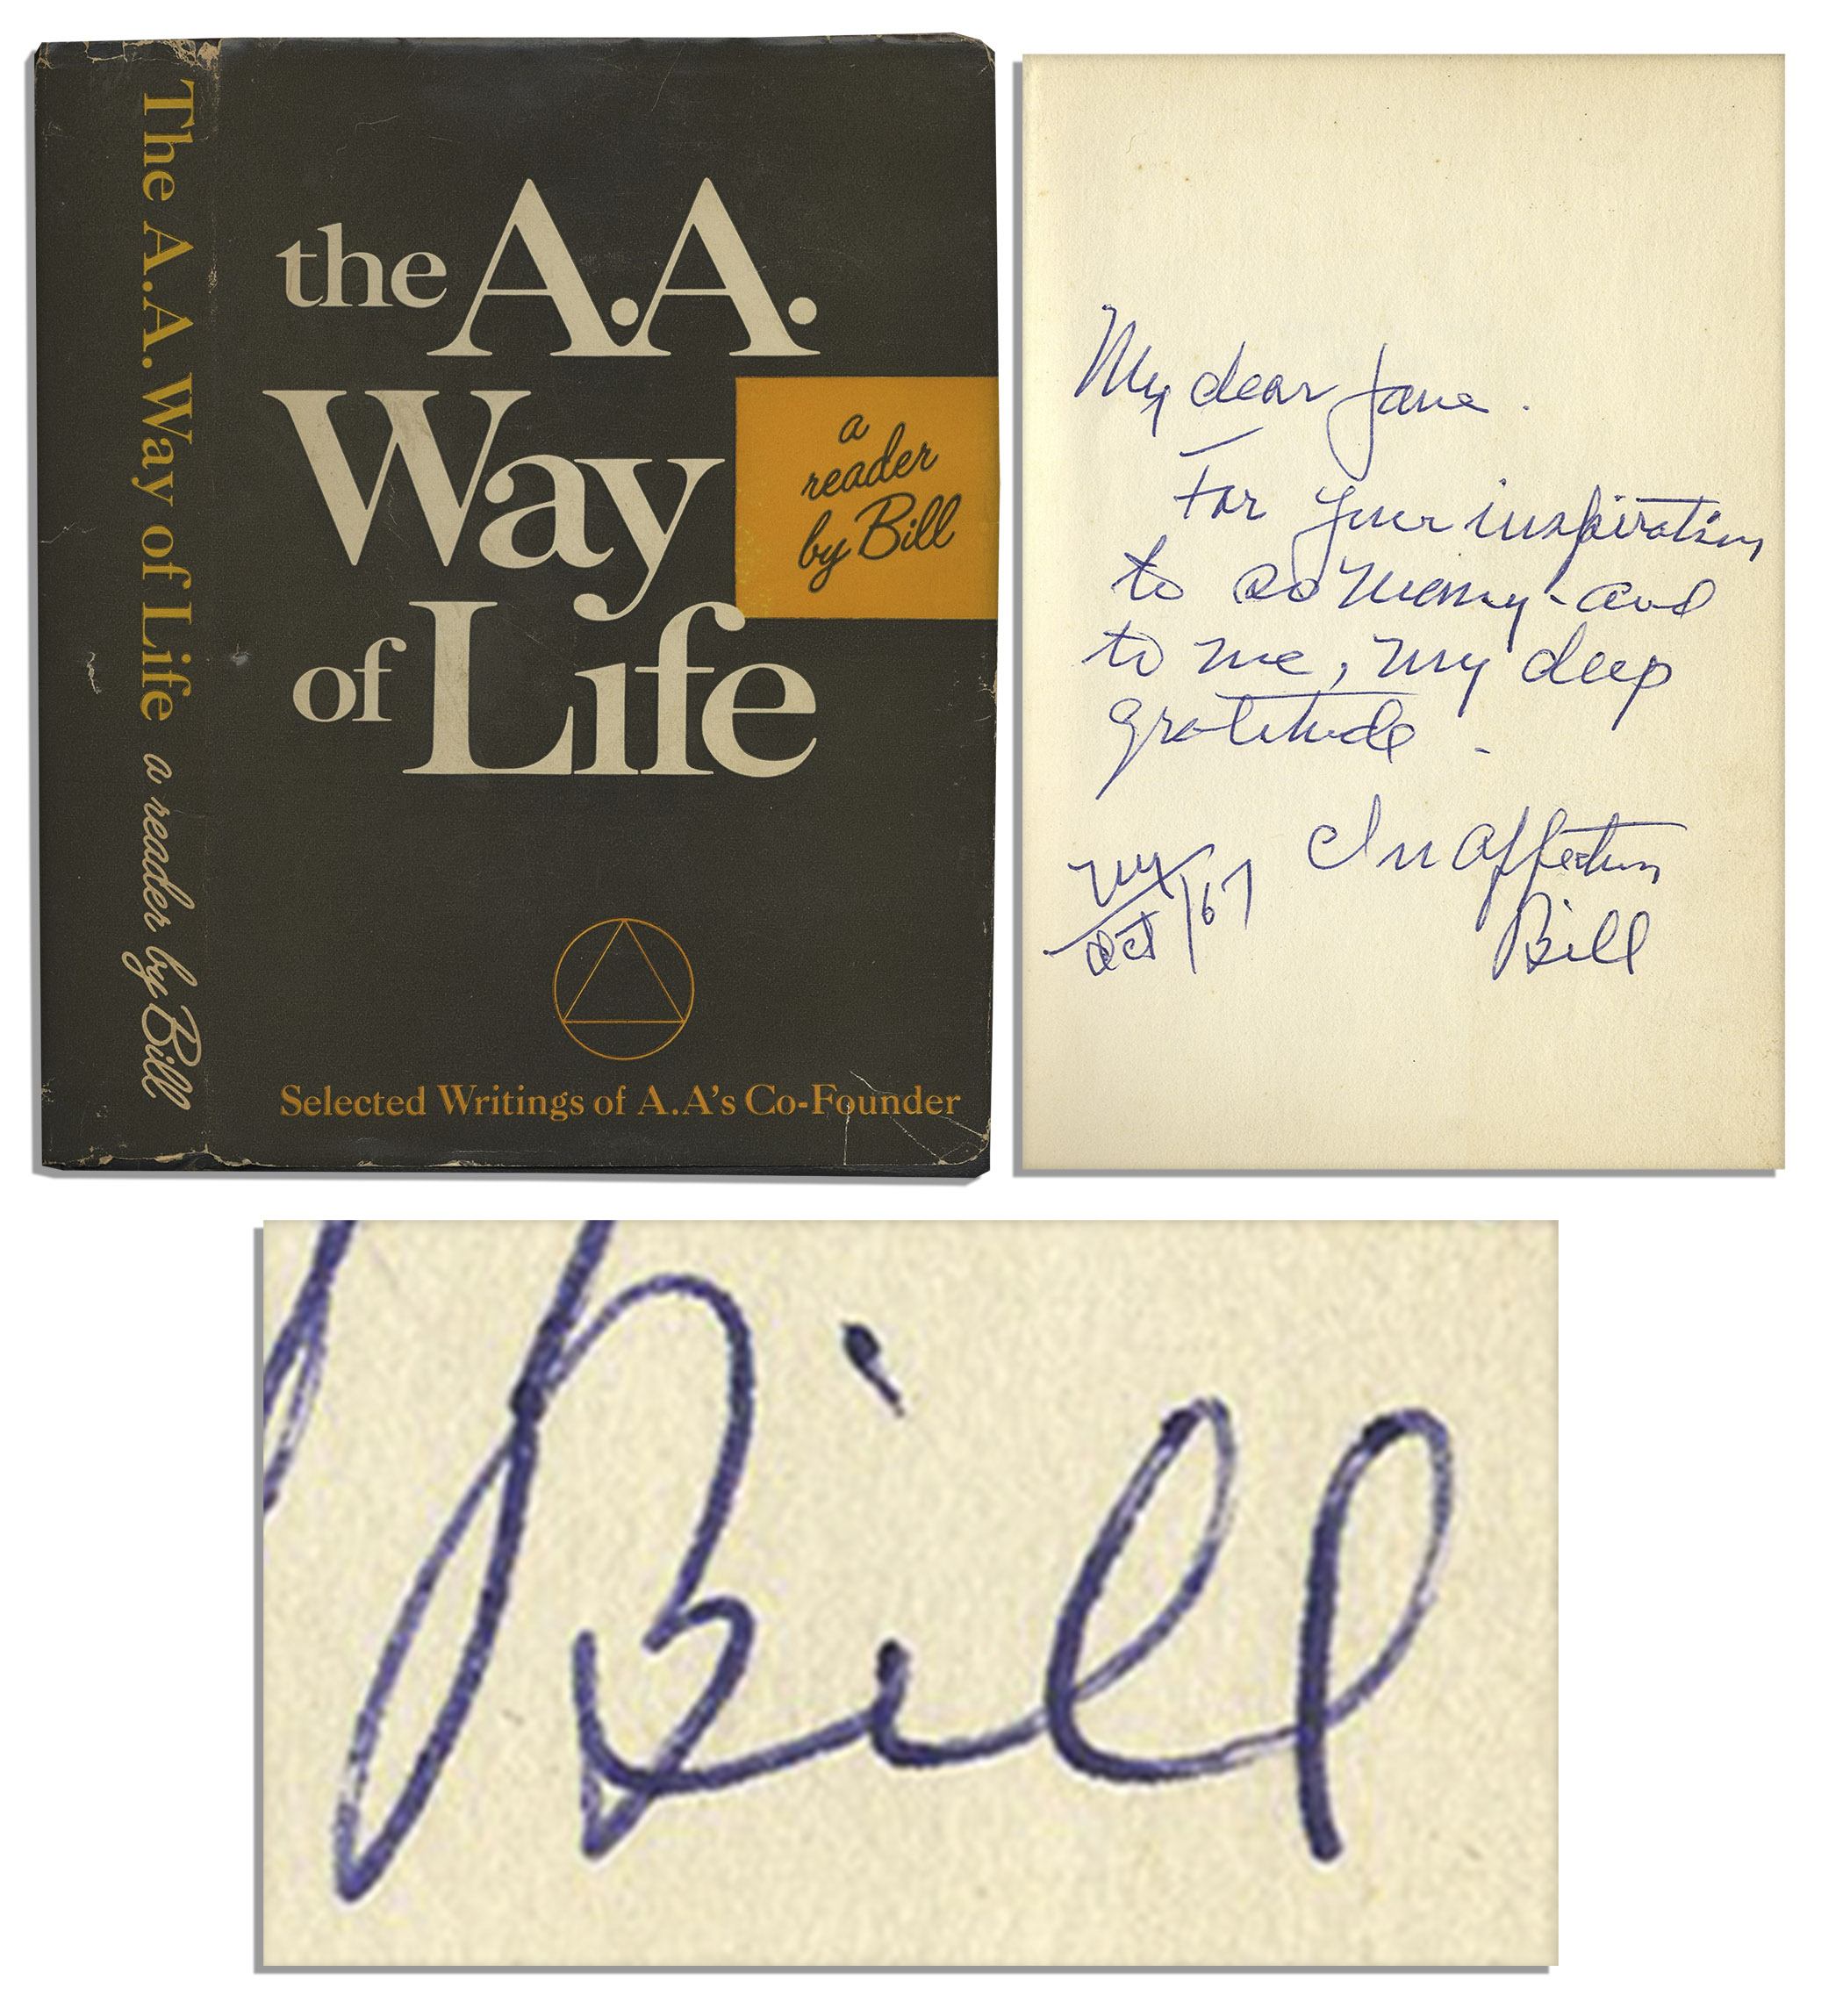 Alcoholics Anonymous First Edition Alcoholics Anonymous Co-Founder Bill Wilson Signed First Printing of ''The A.A. Way of Life''